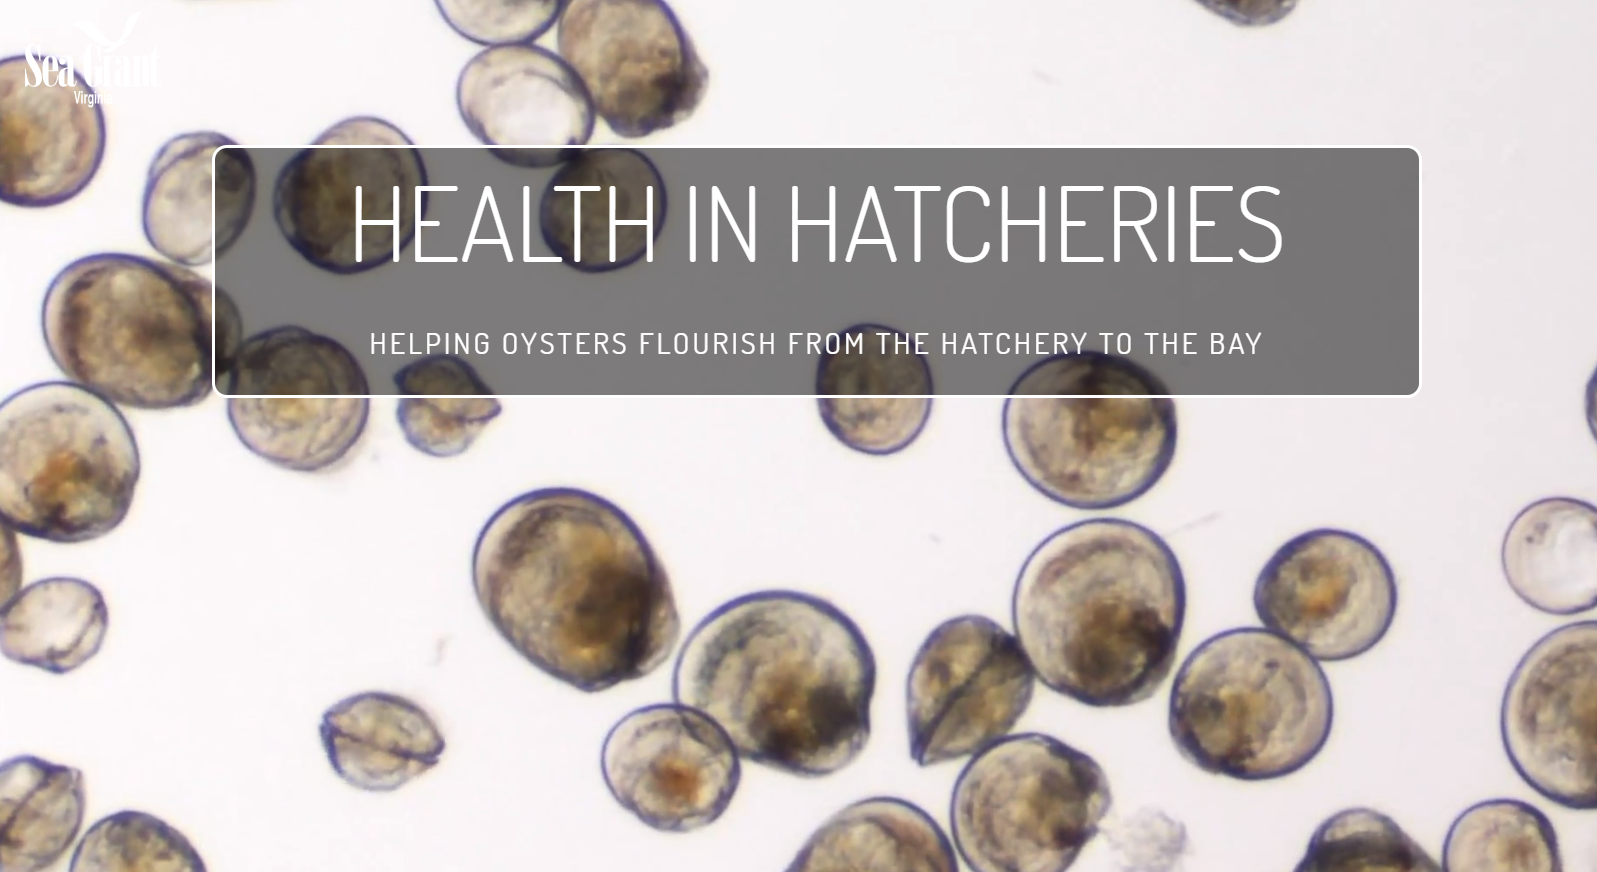 oyster hatchery health